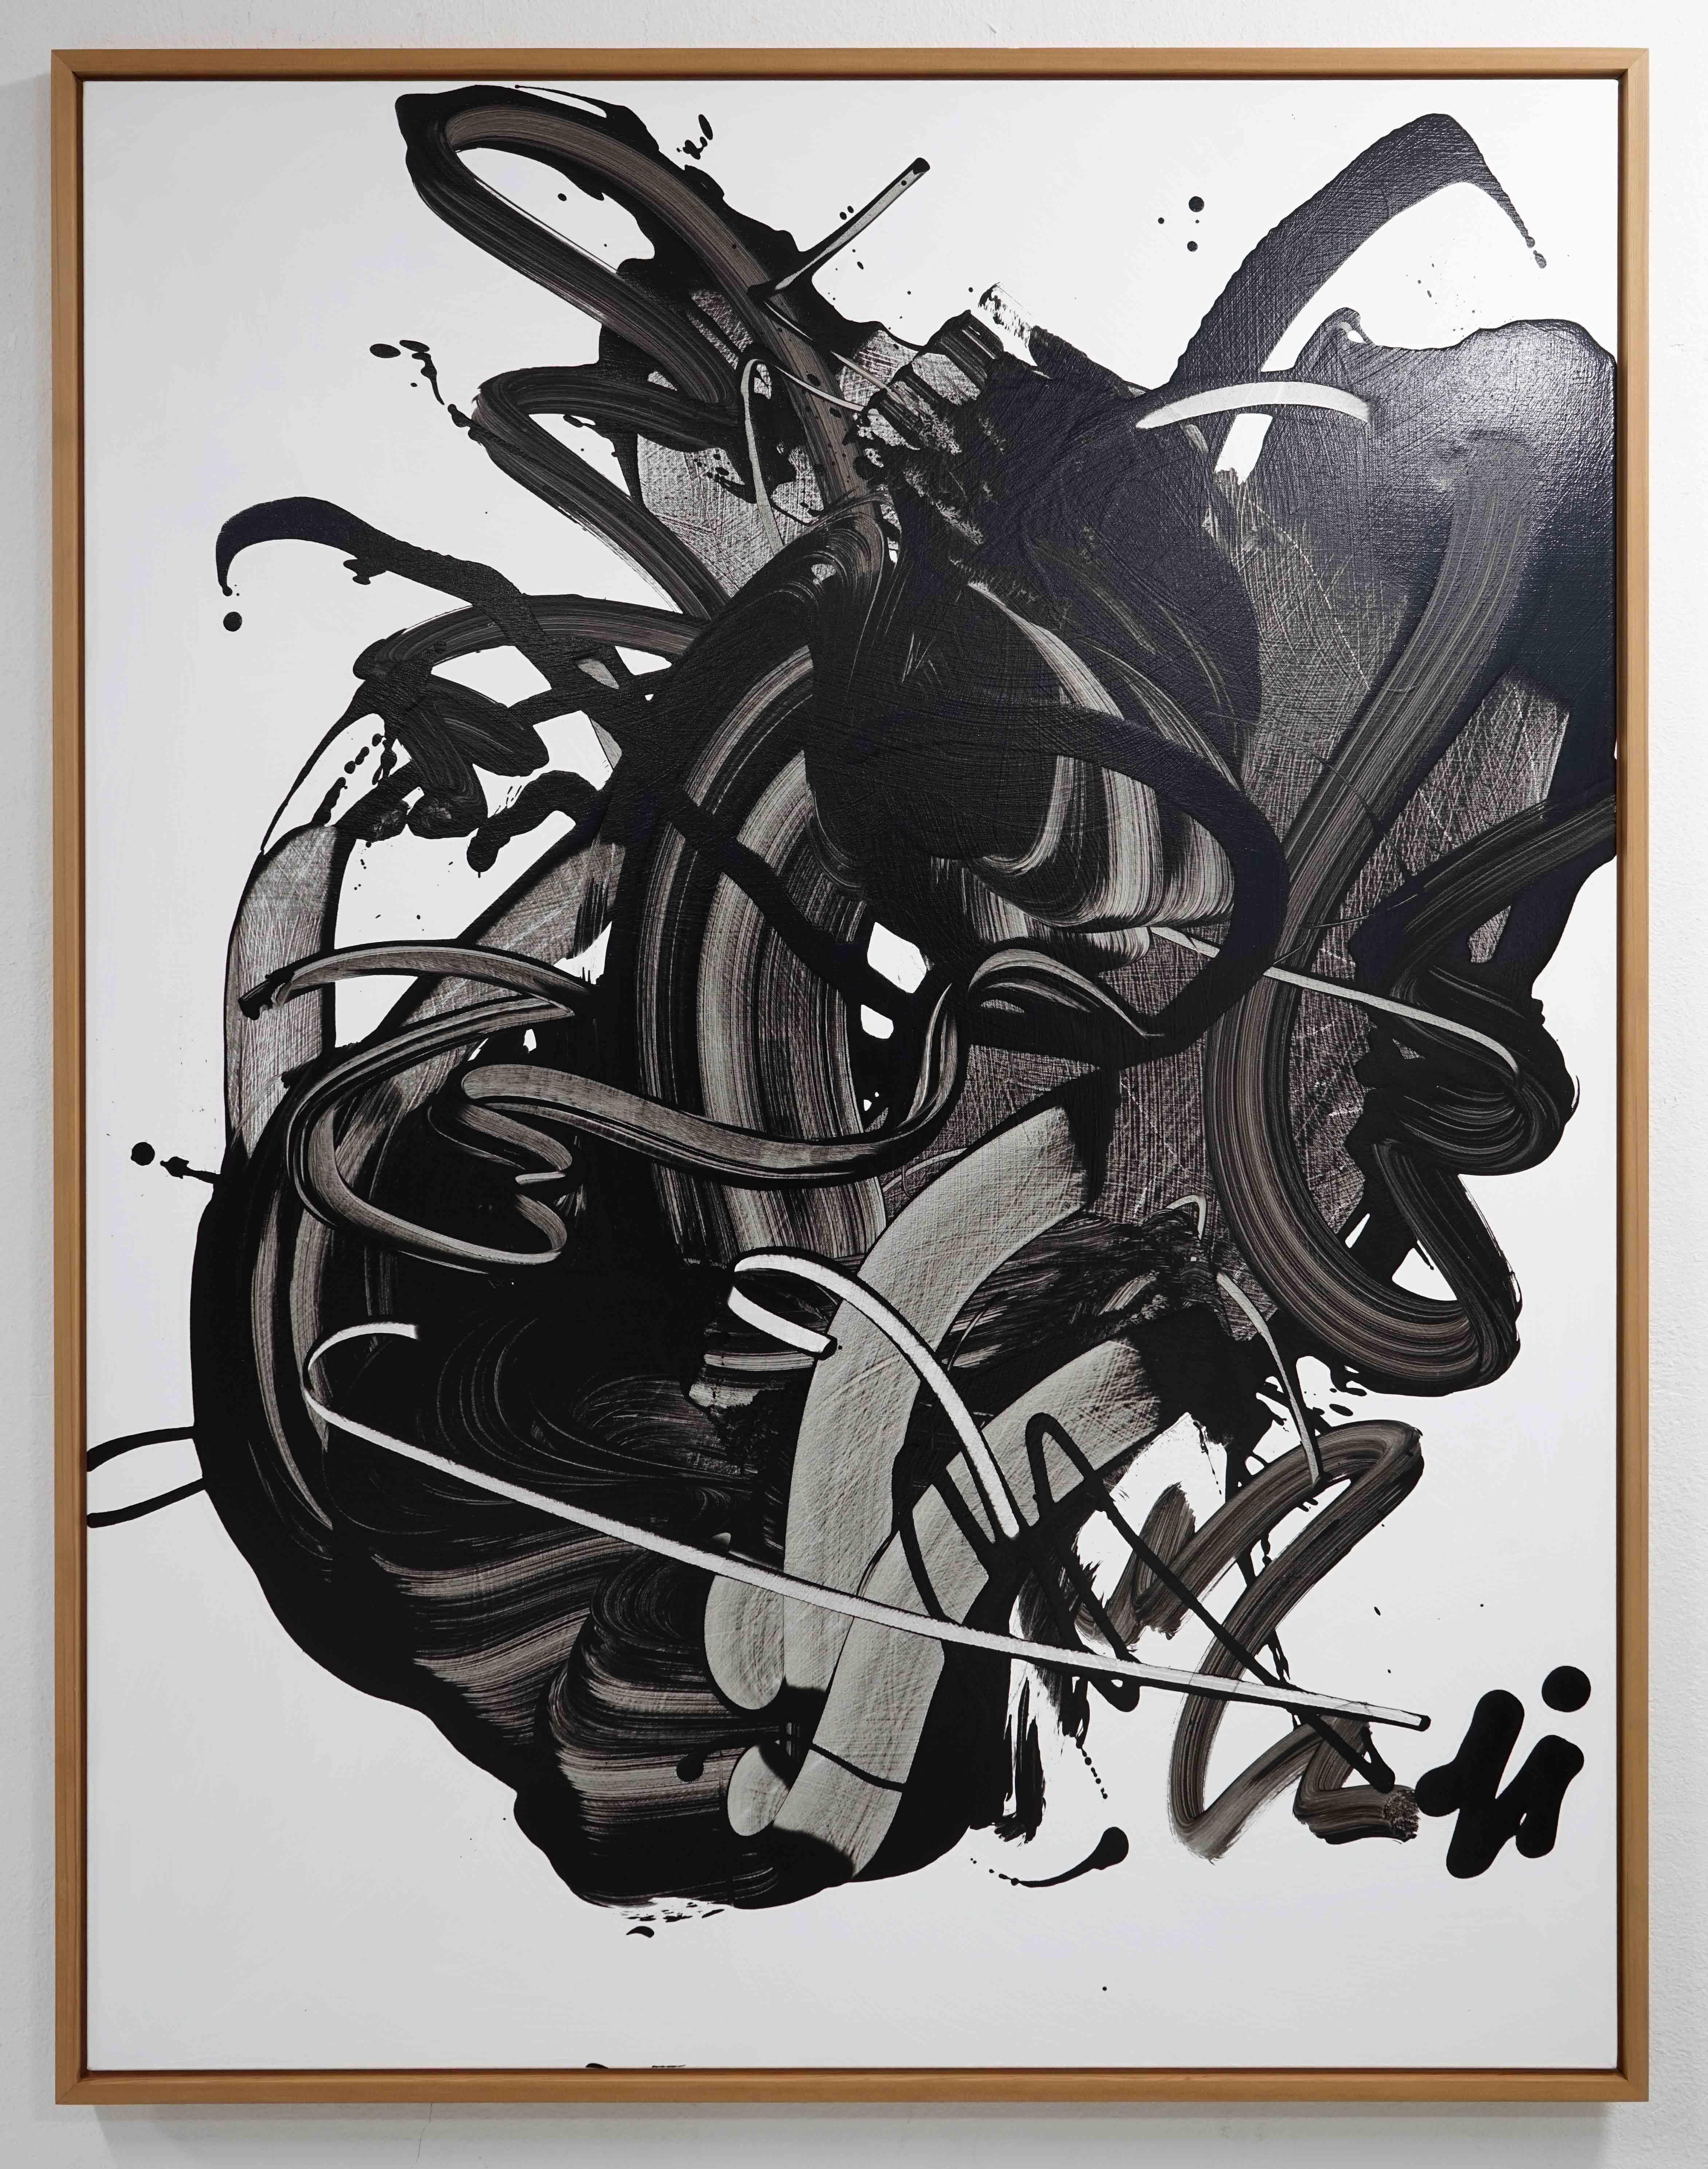 Rue of the Opposite 25, Abstract Expressionist Contemporary Painting Black Oil